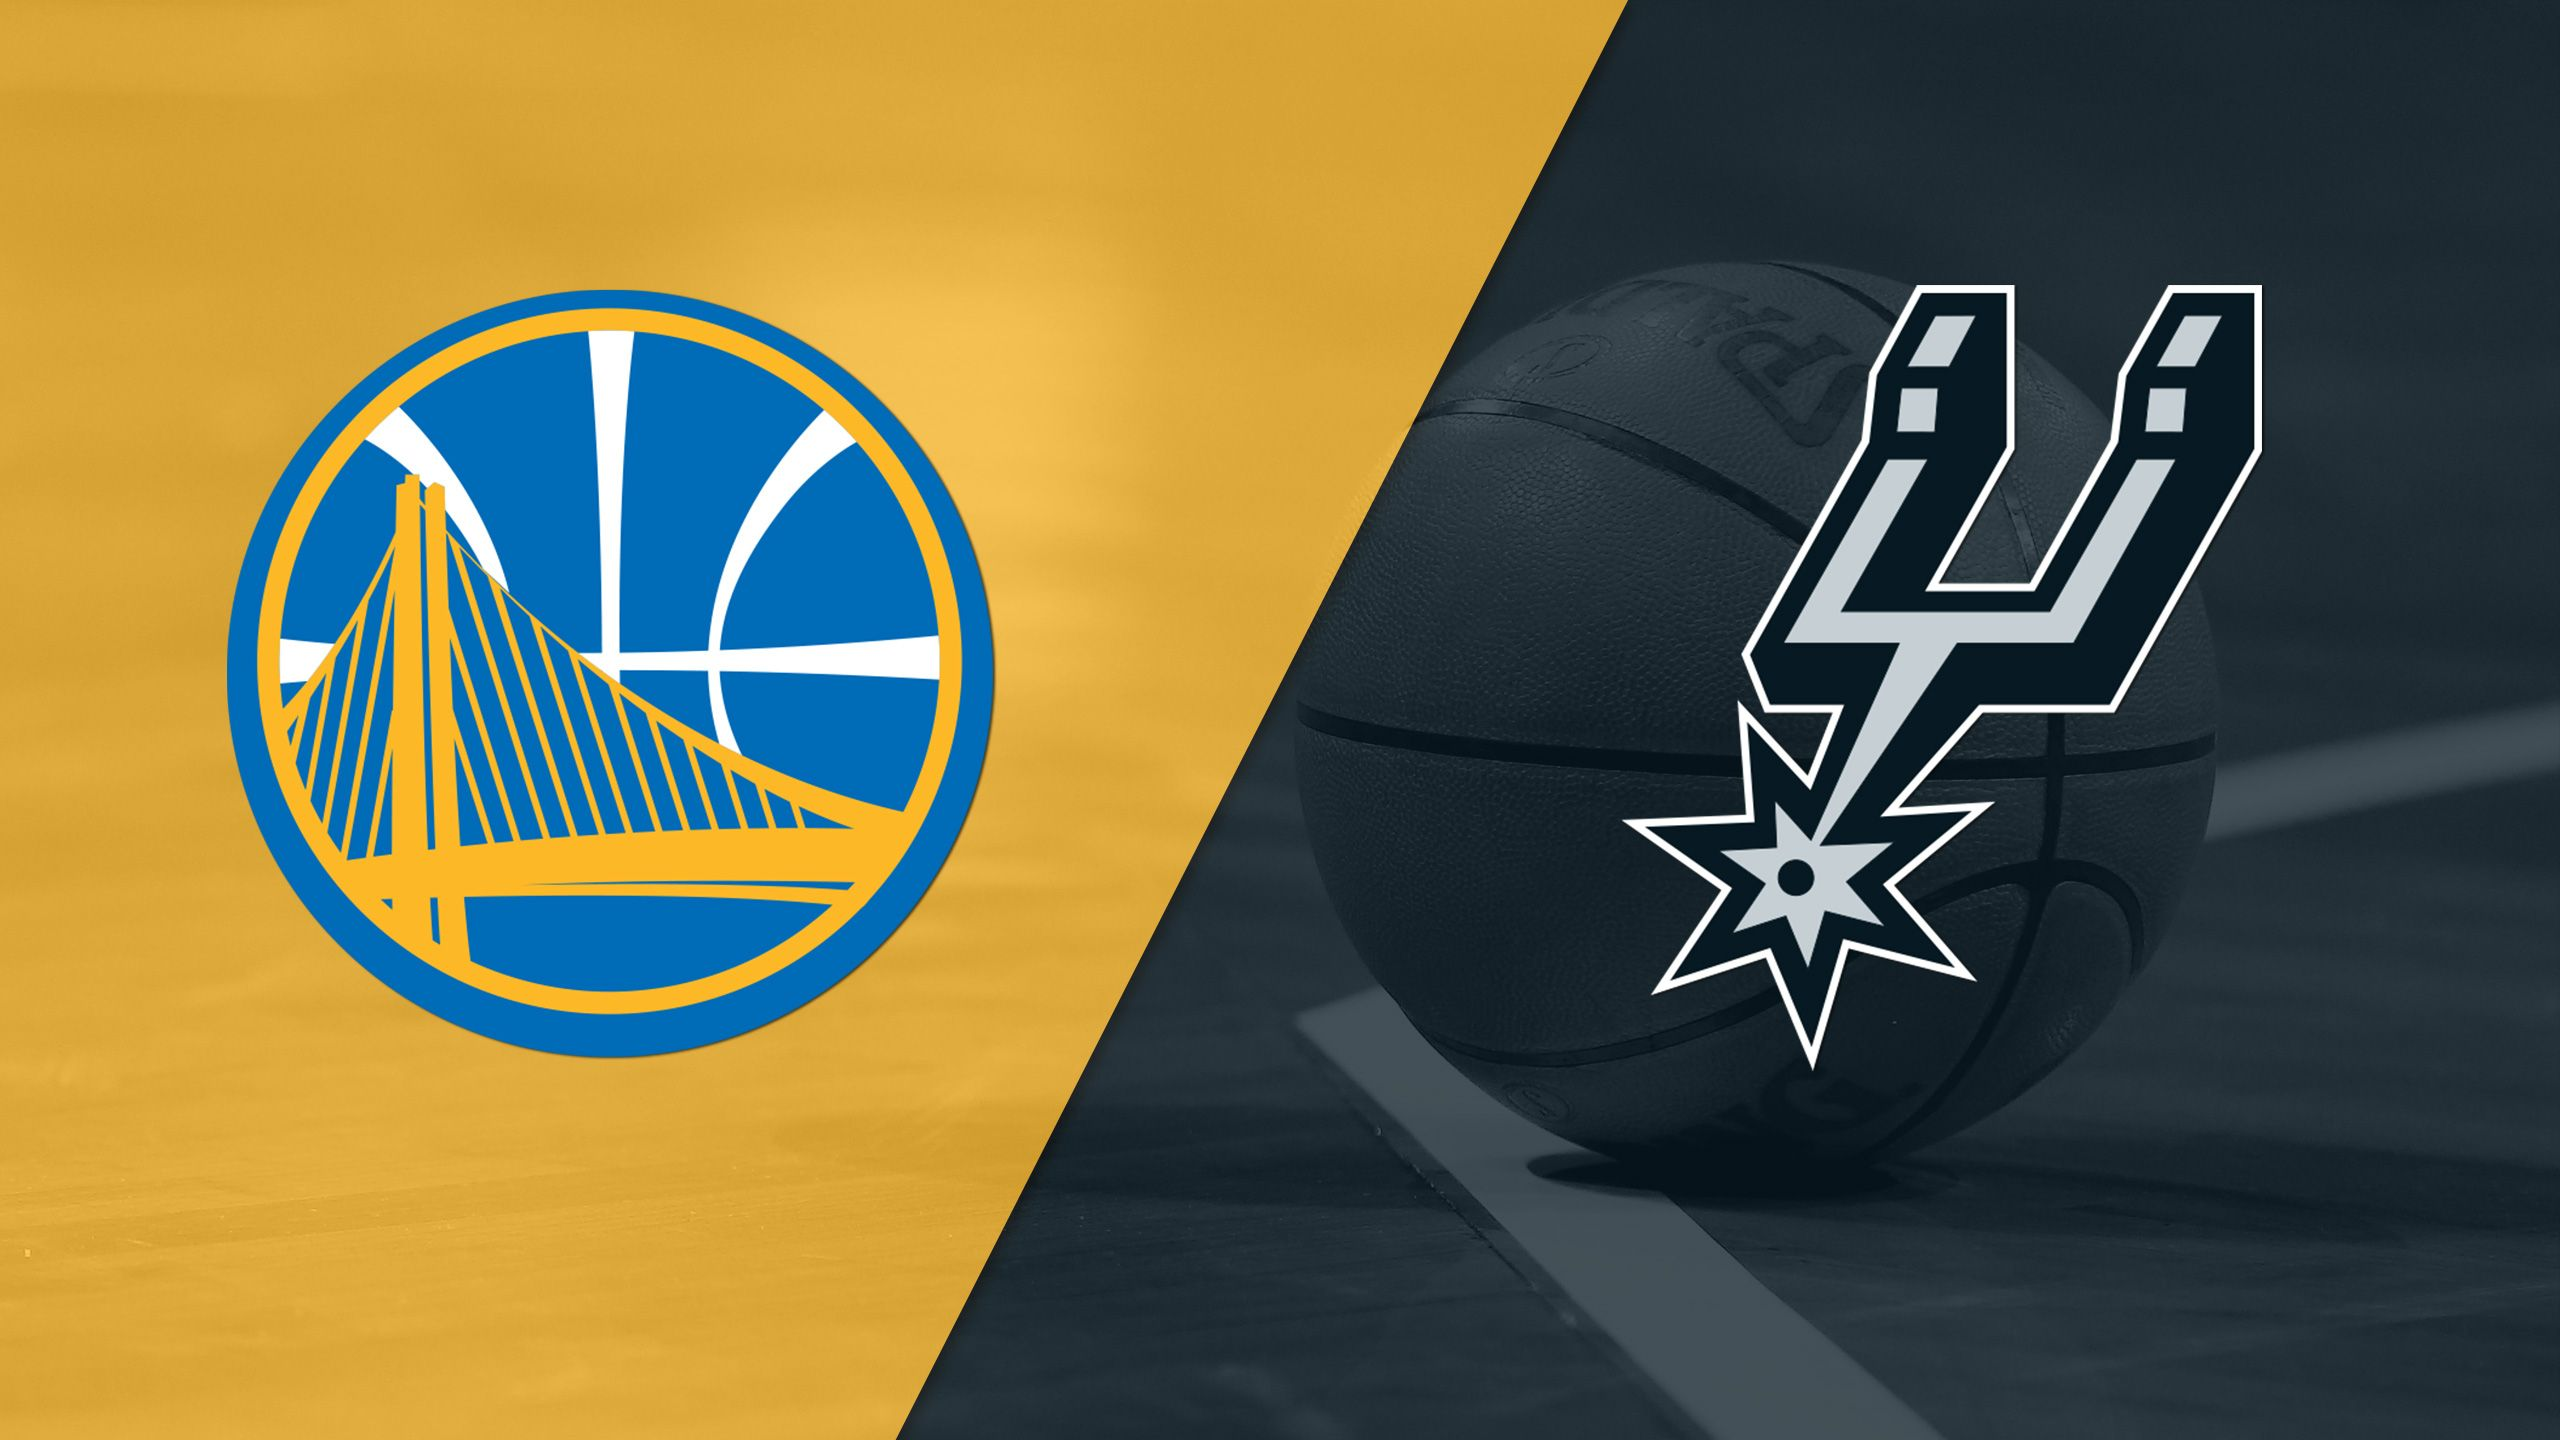 Data Center - Golden State Warriors vs. San Antonio Spurs (Conference Finals Game 4)